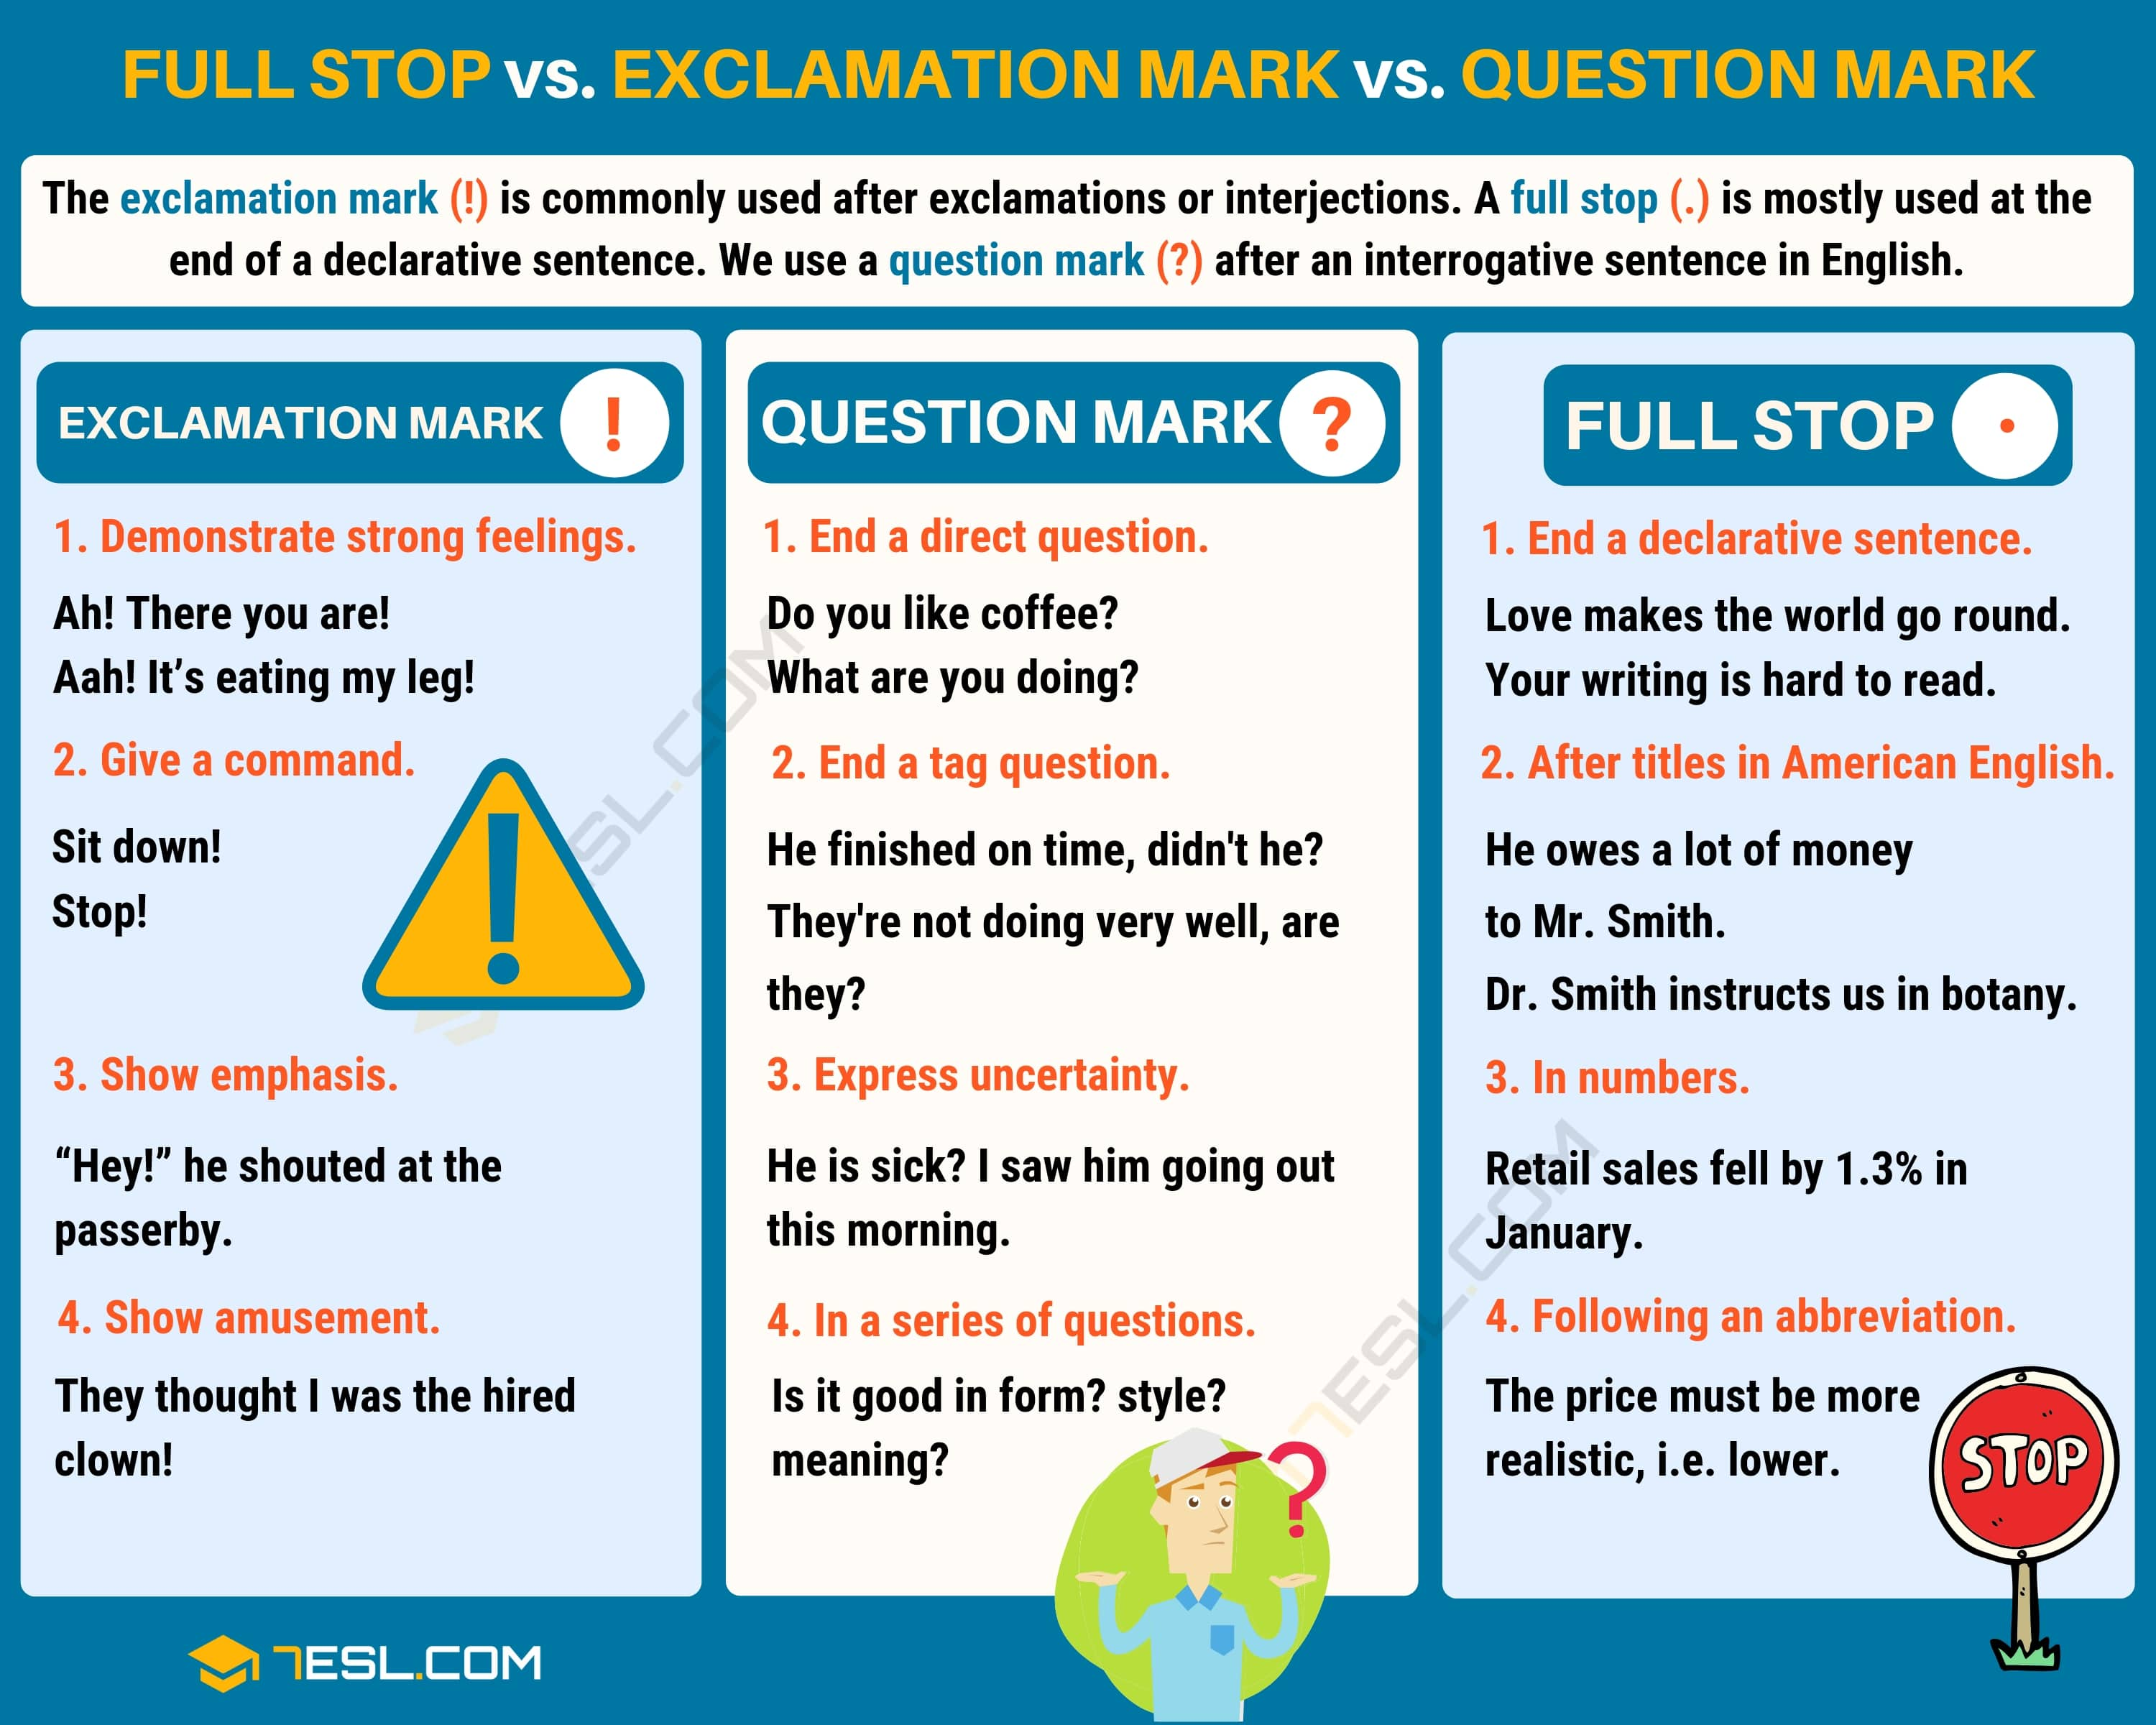 Exclamation Mark vs. Question Mark vs. Full Stop